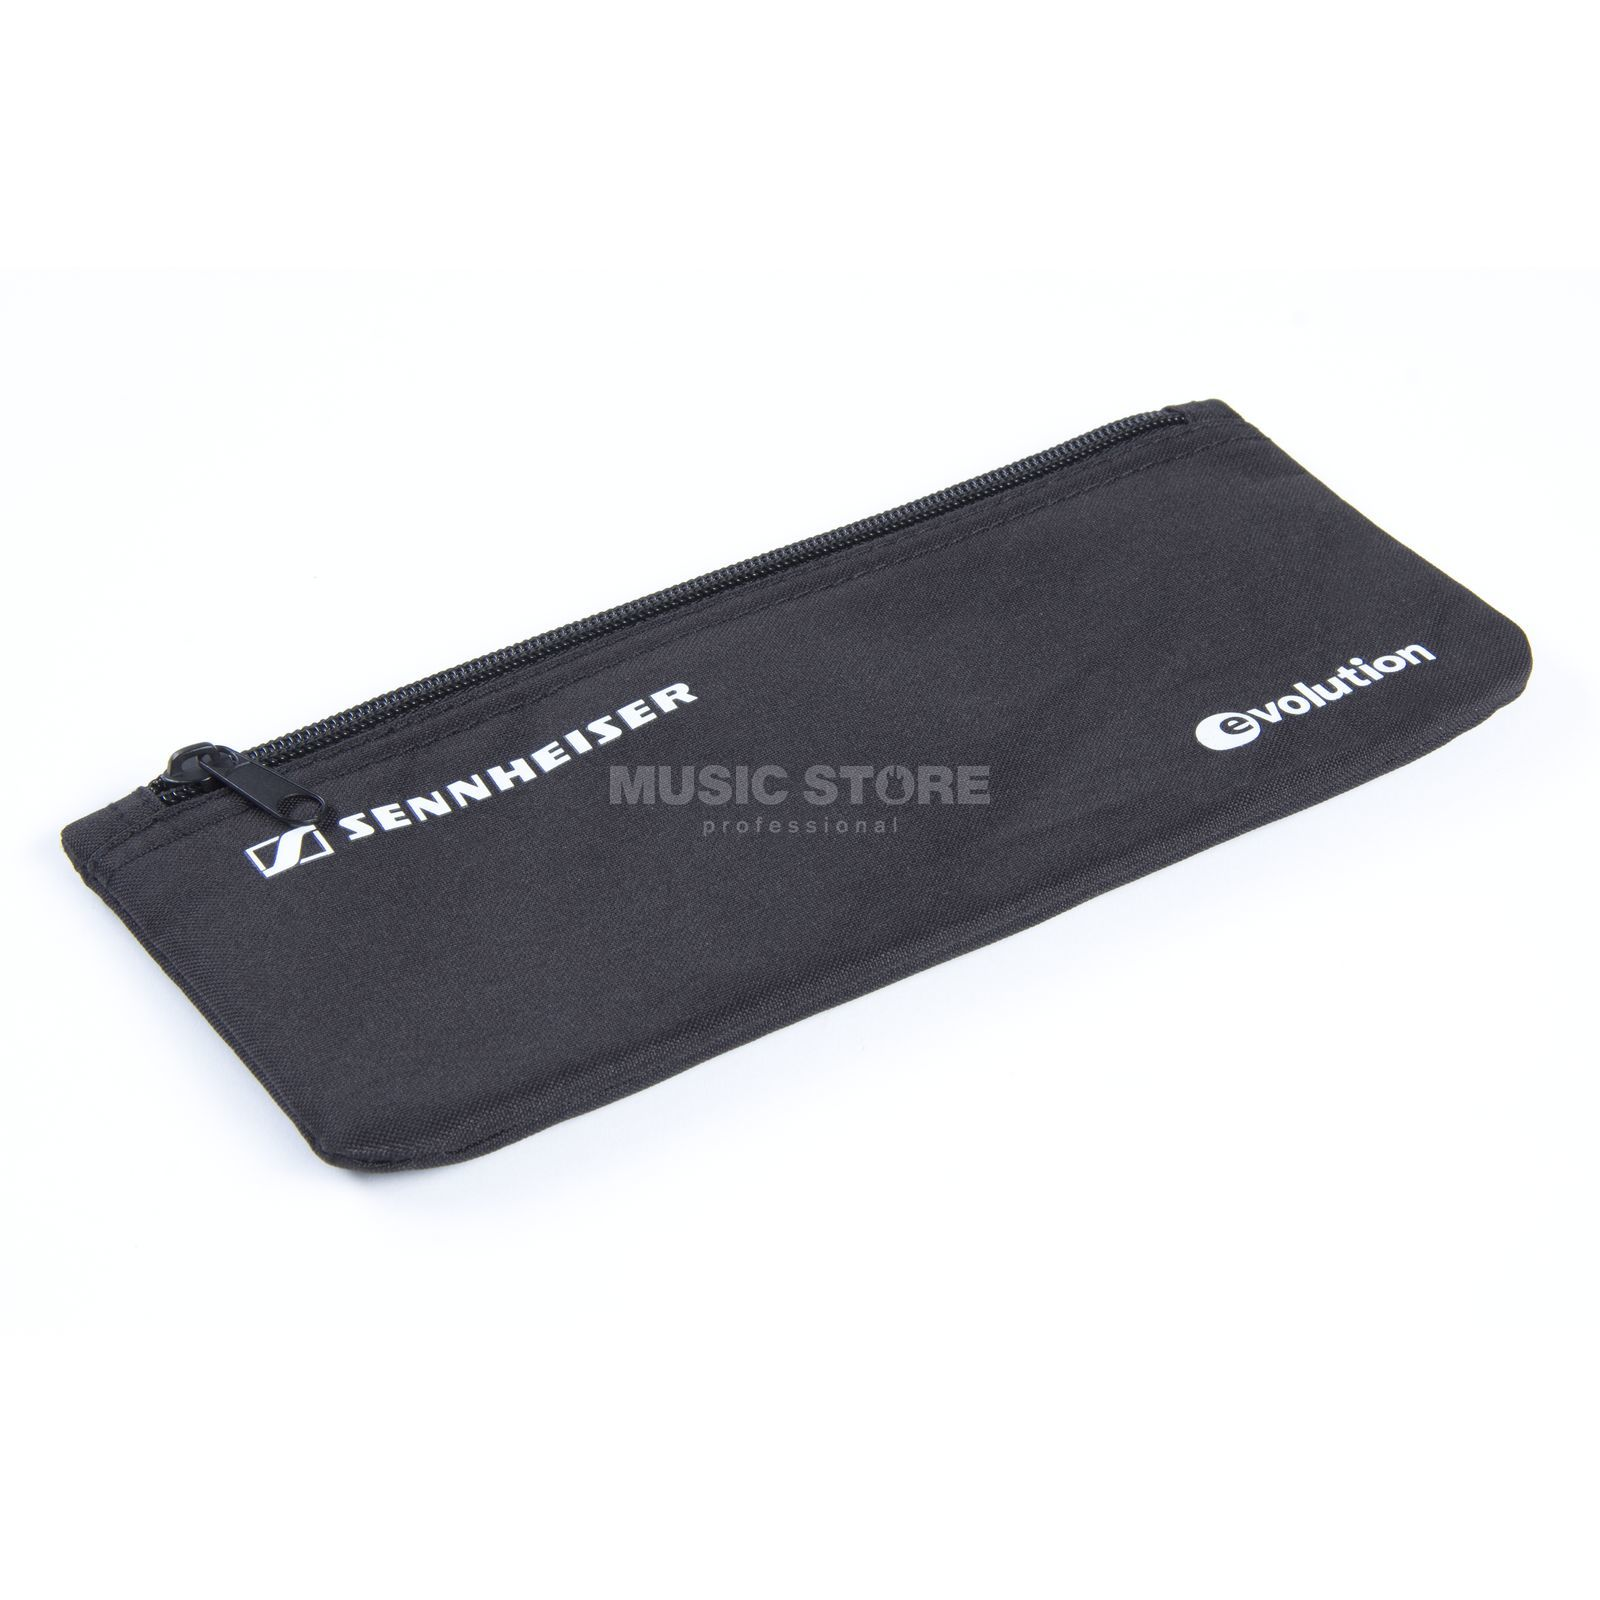 Sennheiser Evolution Nylon Bag schwarz Produktbild